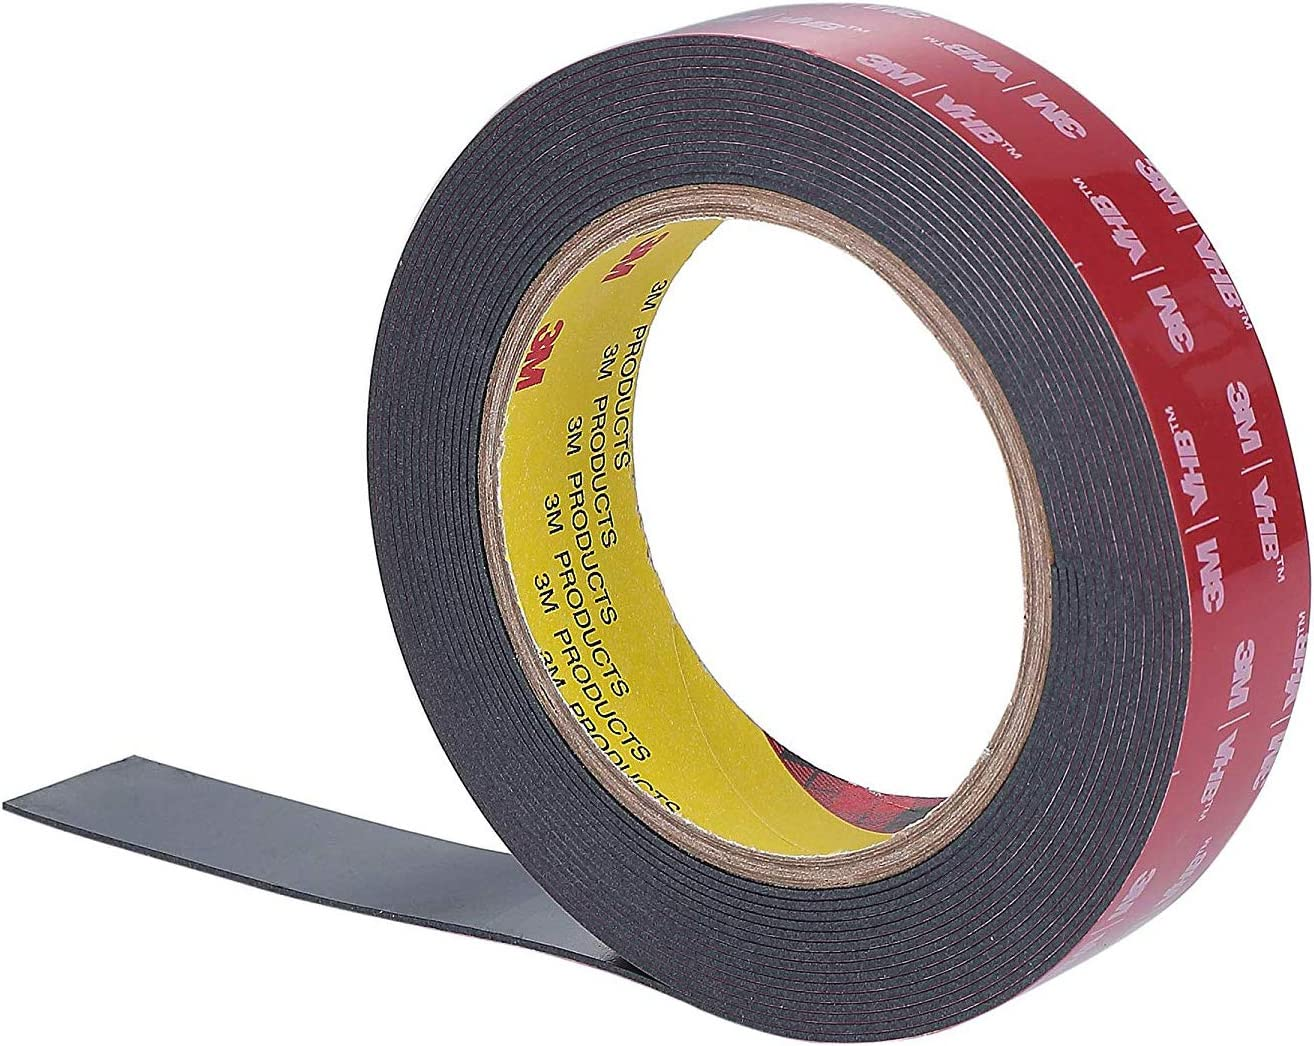 CANOPUS 0.94 Inch by 9 Feet, 3M VHB Double Sided Tape, Heavy Duty Mounting, Adhesive Waterproof Tape